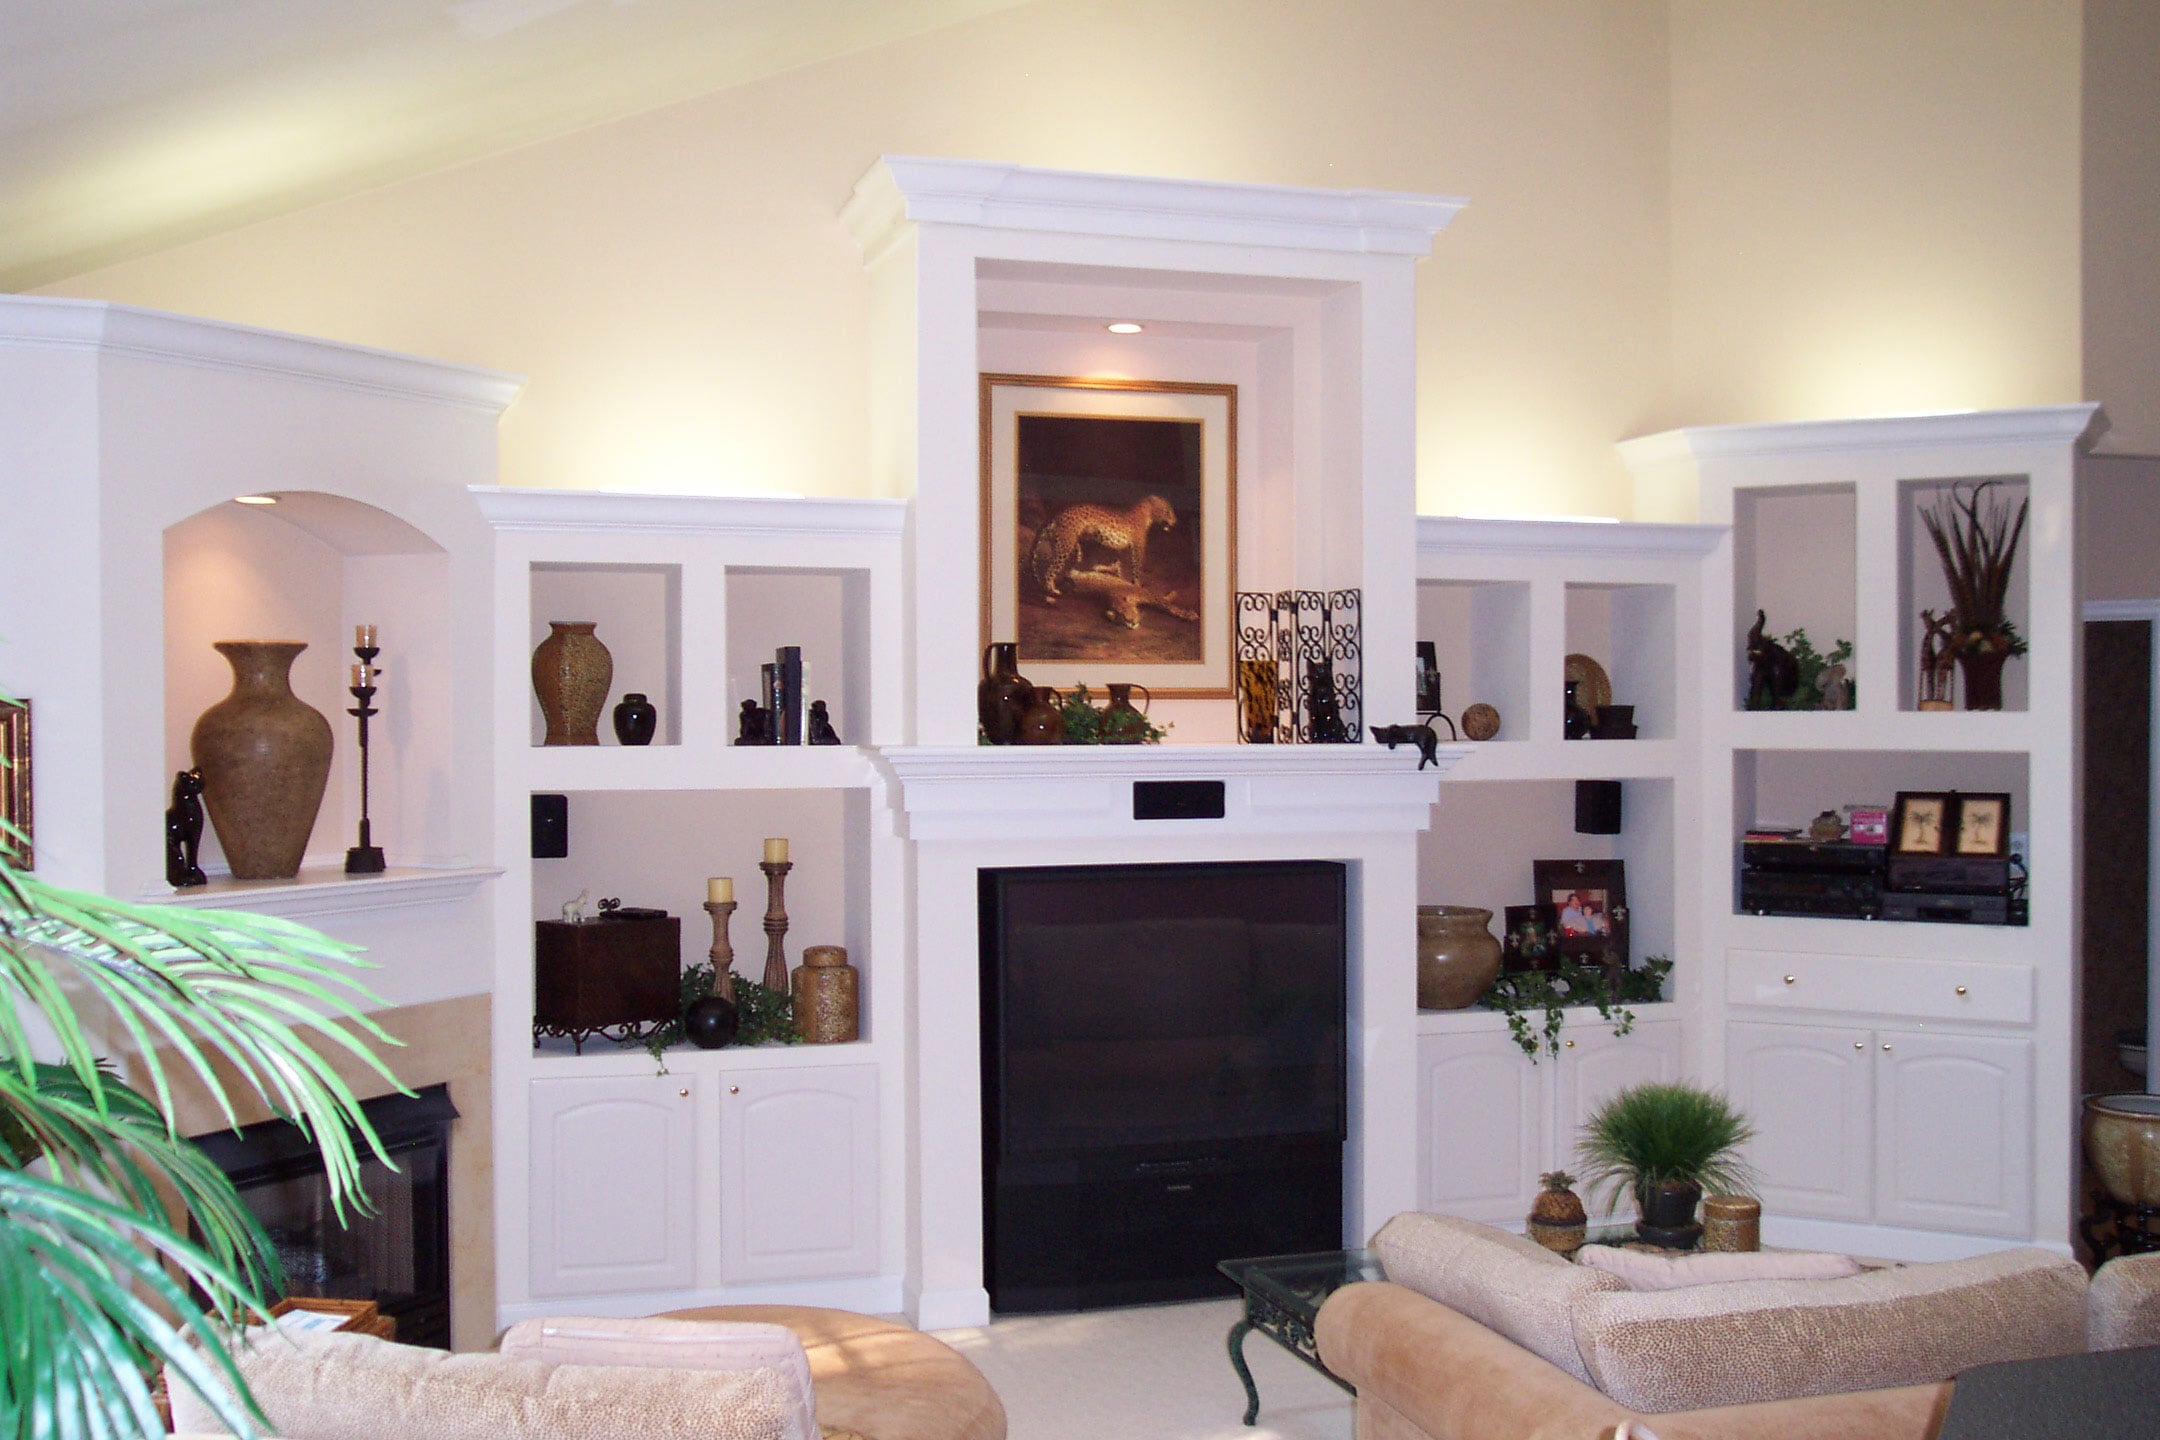 New living room remodeled by Wenkat Design and Construction